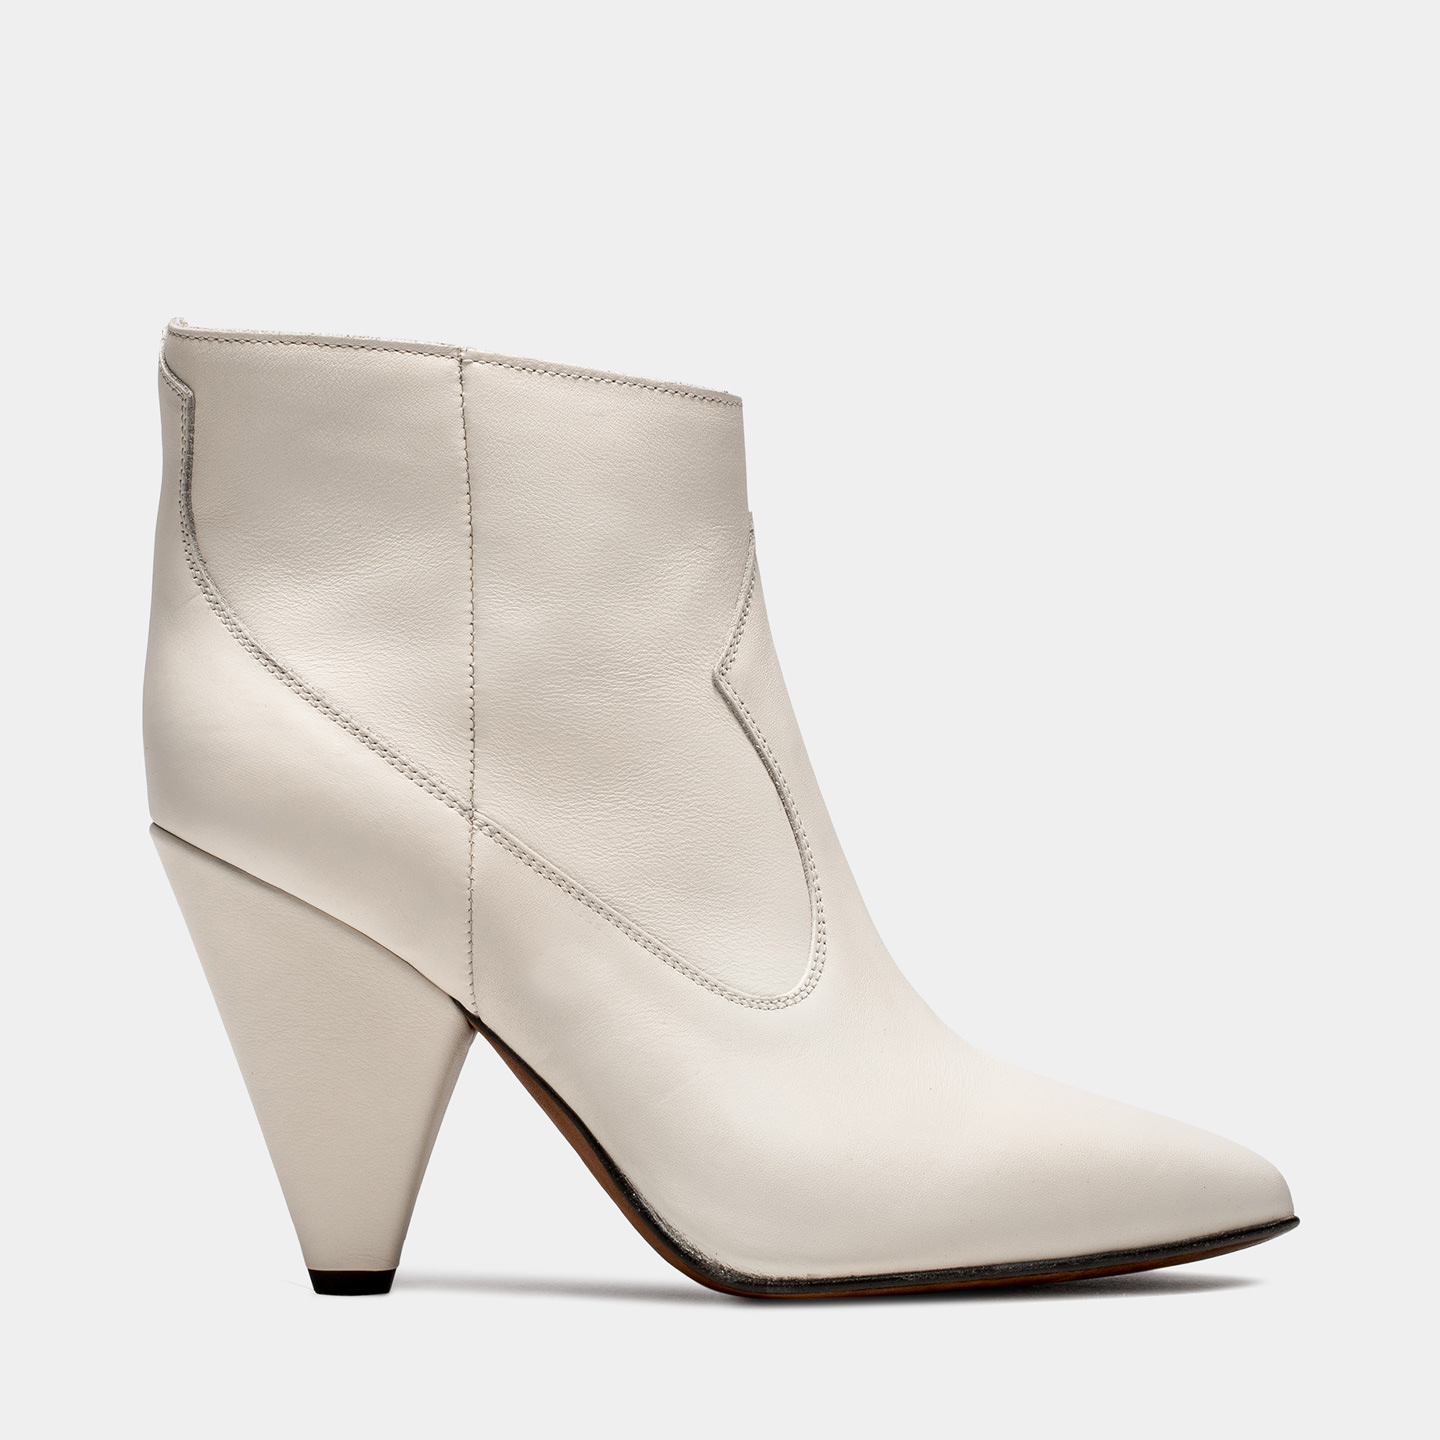 BUTTERO: WHITE LEATHER ROSE LOW TOP BOOTS